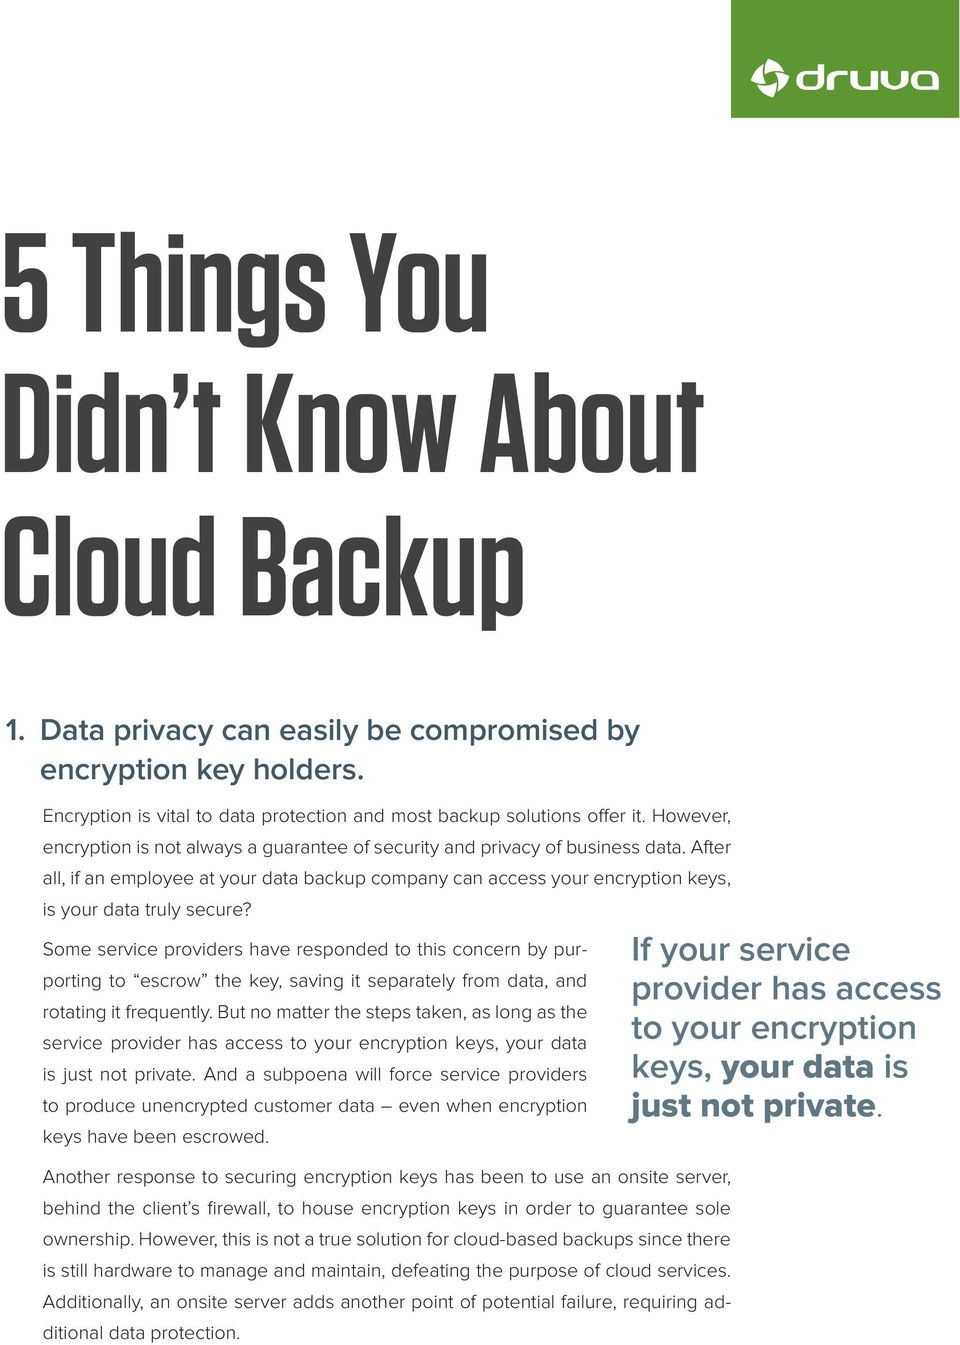 After all, if an employee at your data backup company can access your encryption keys, is your data truly secure?